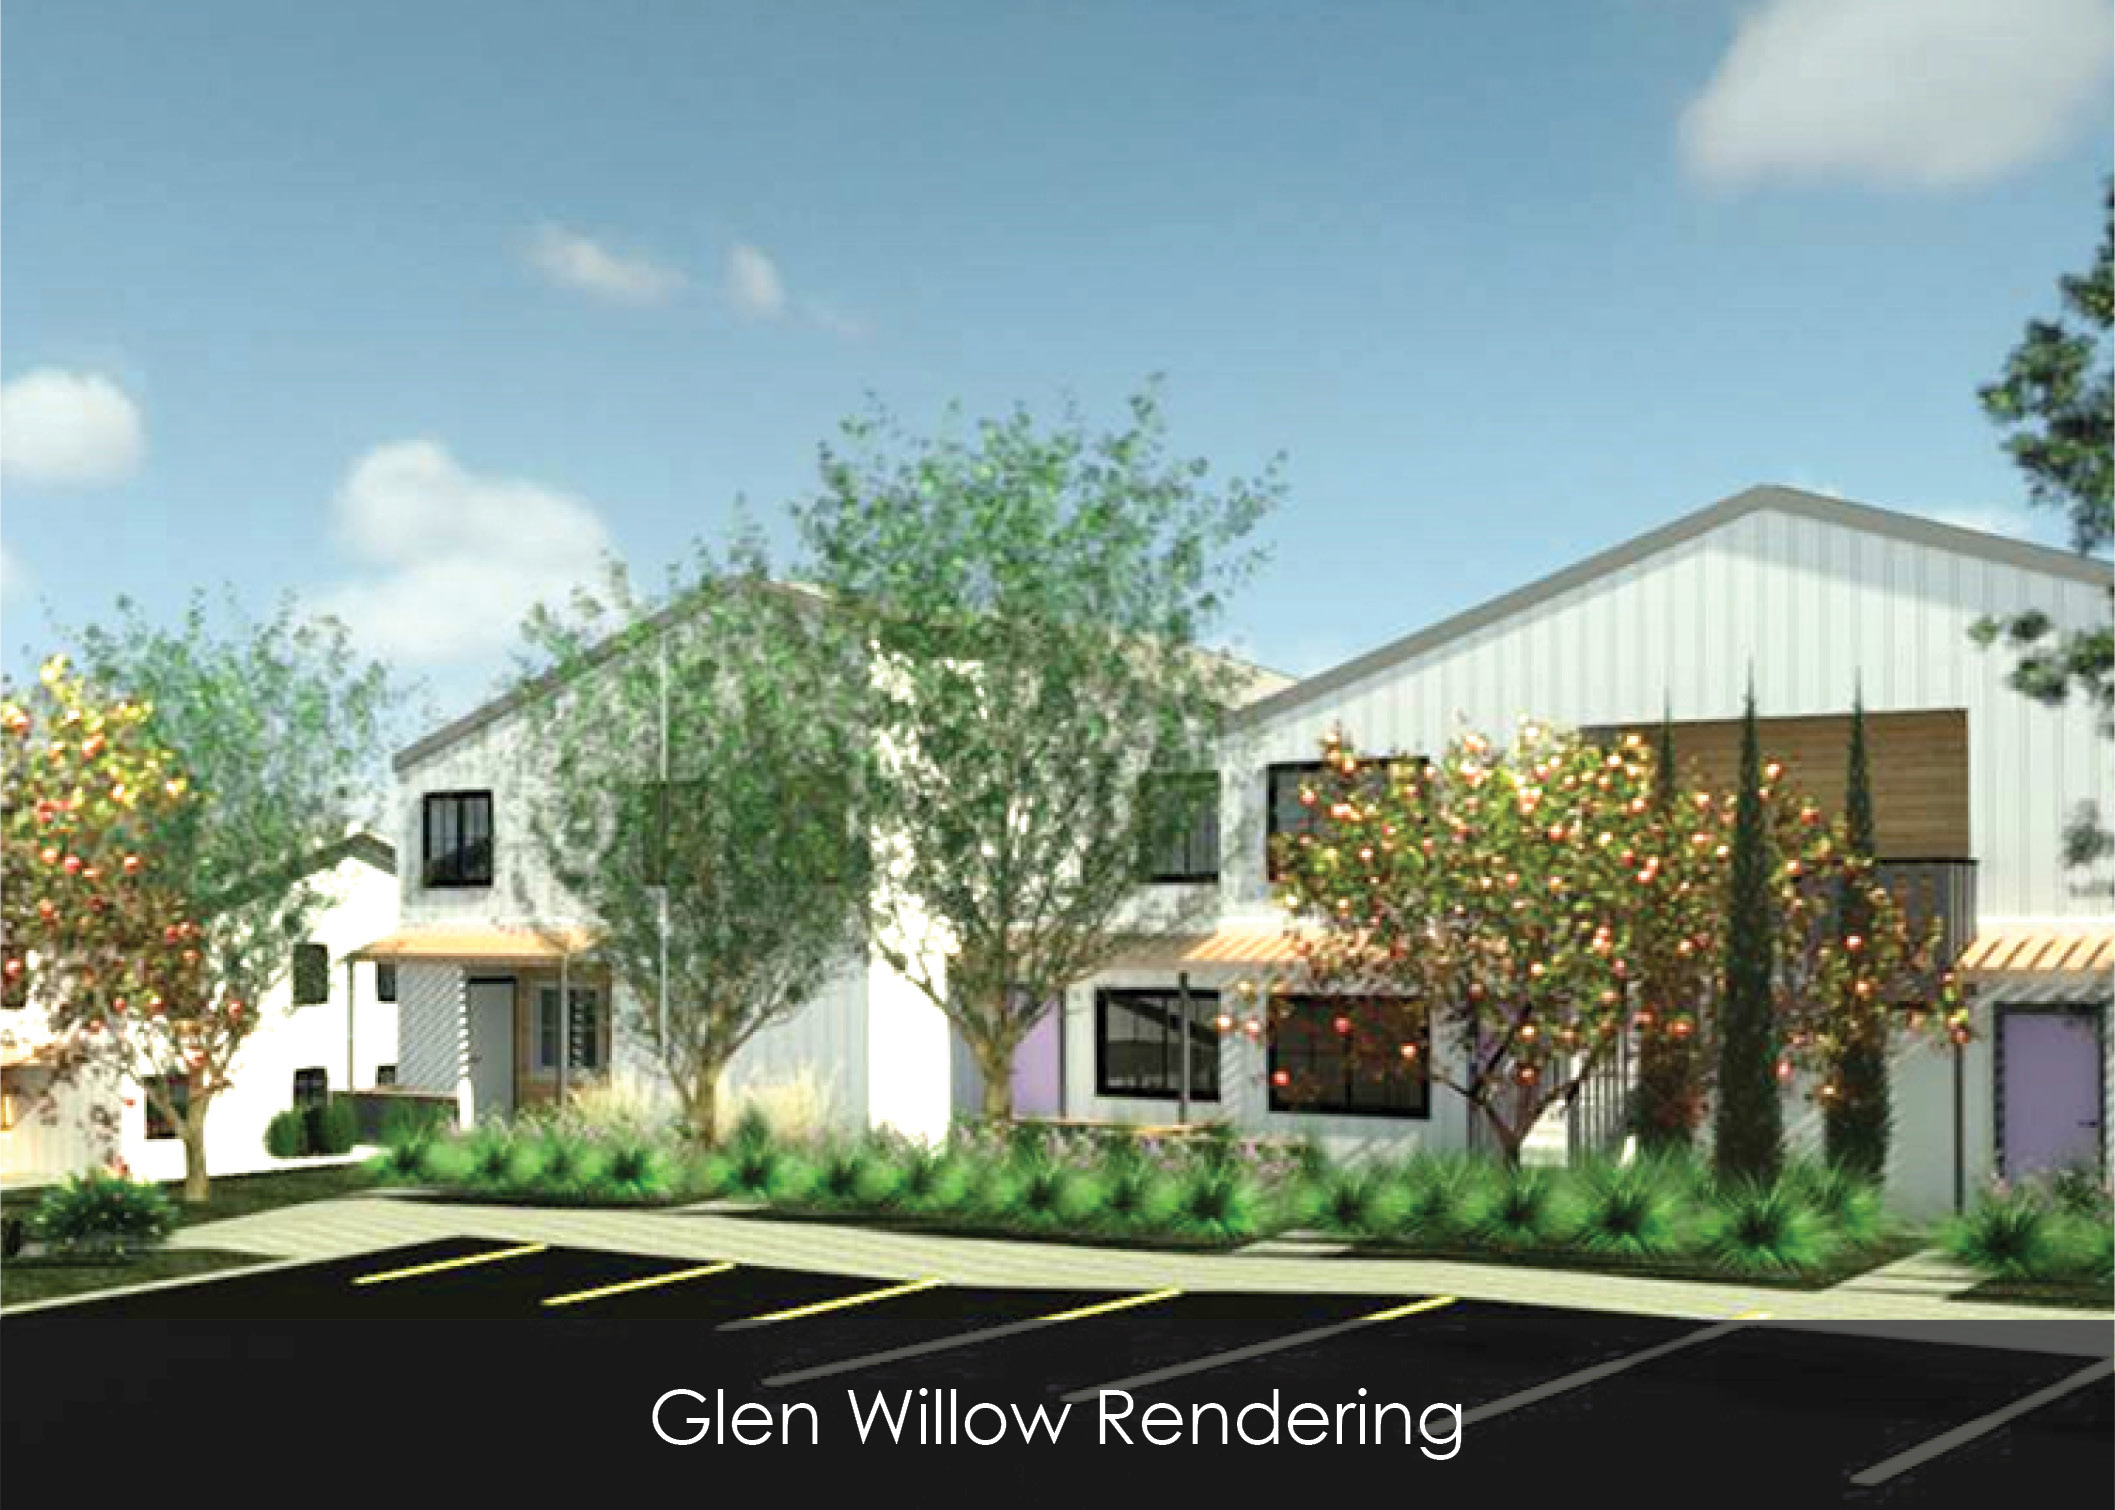 Rendering of Glen Willow